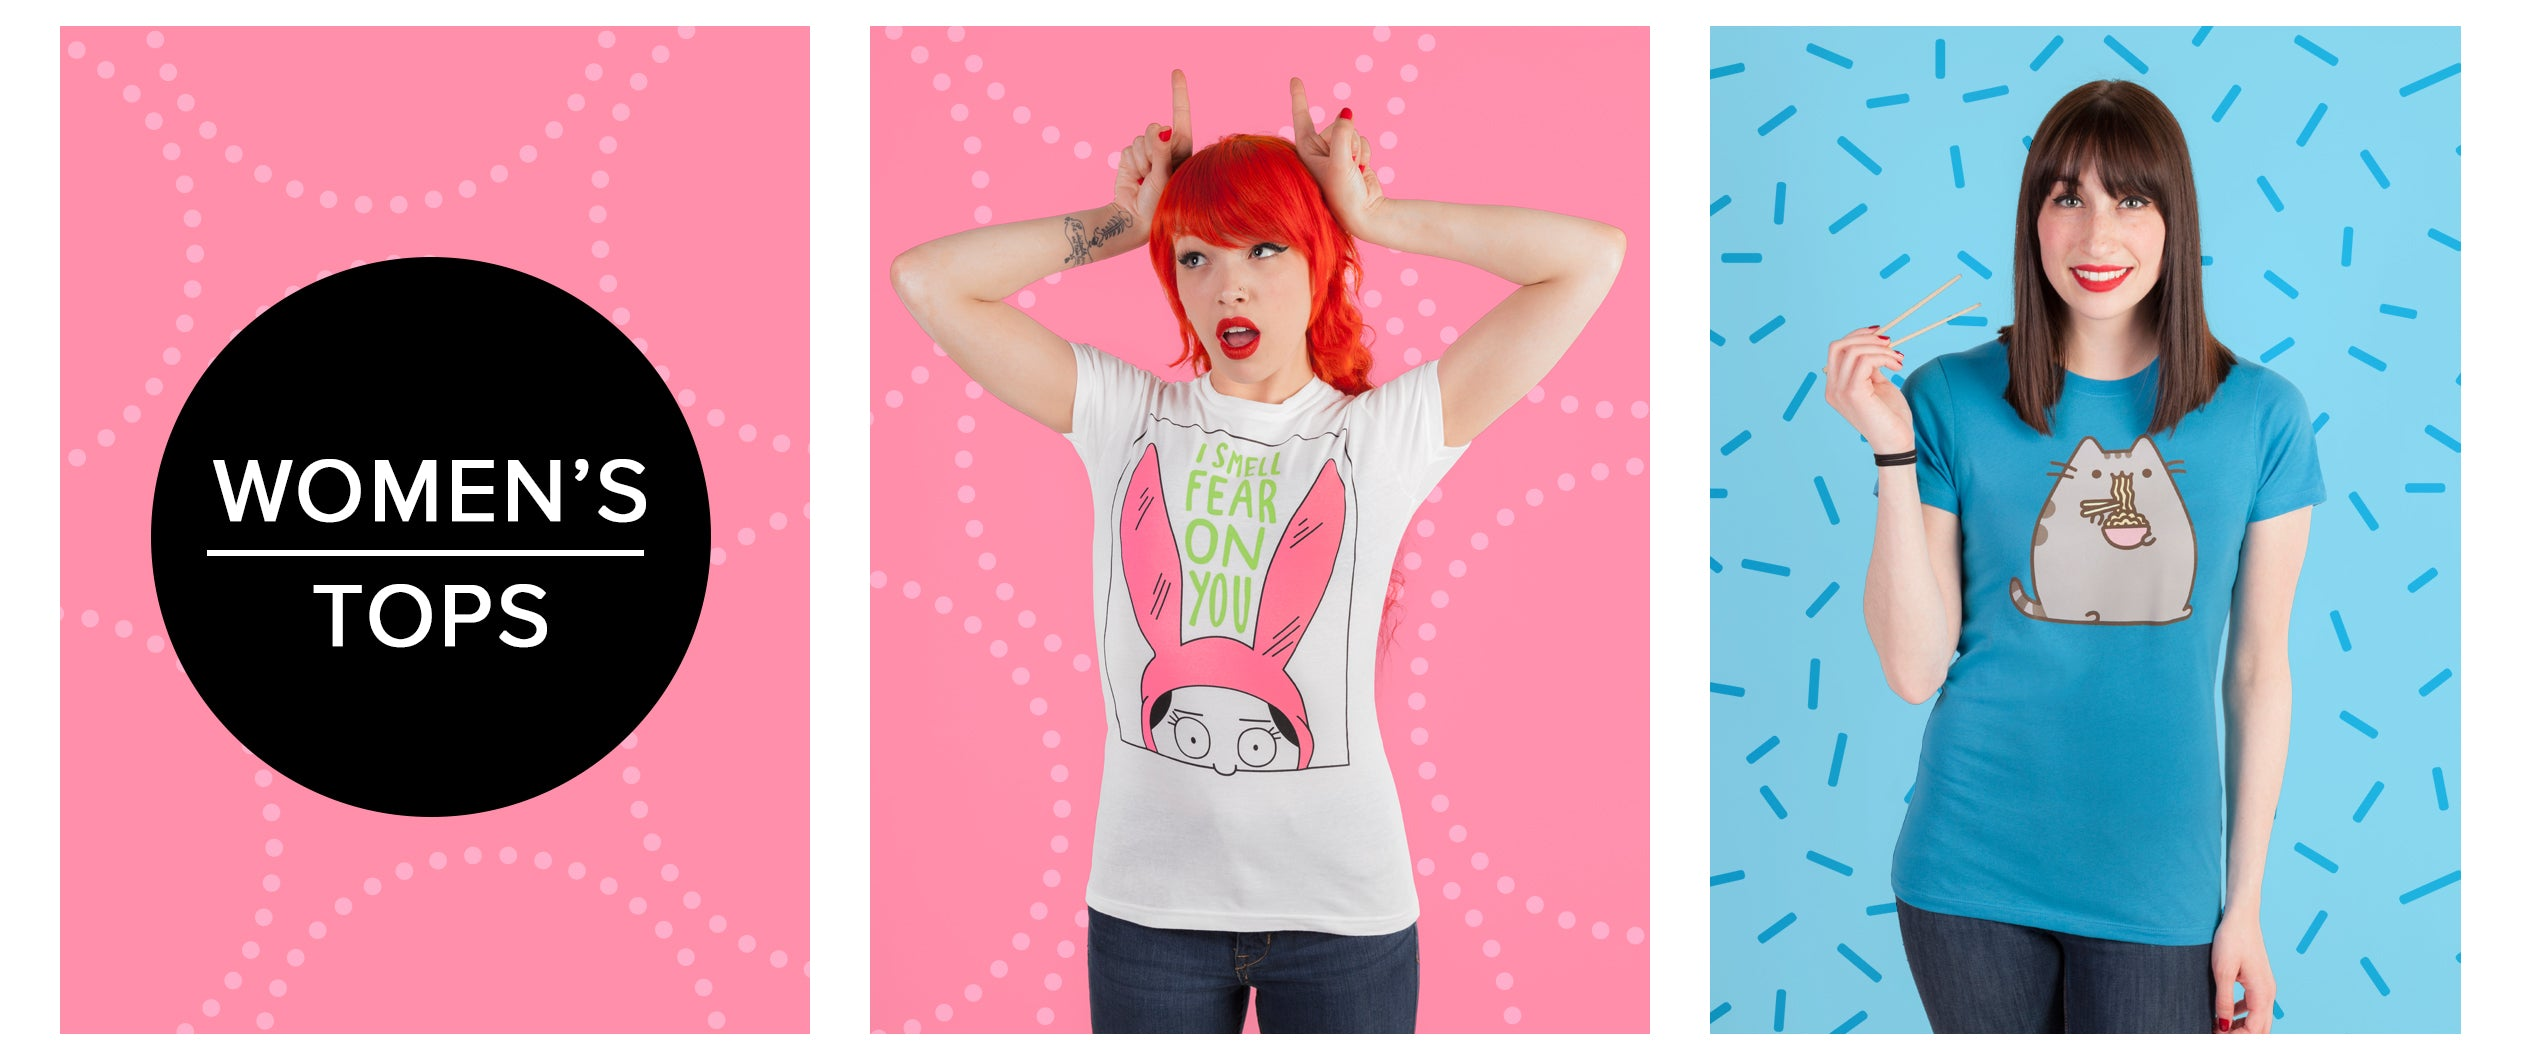 Women's Tops - Bob's Burgers, Pusheen, and more